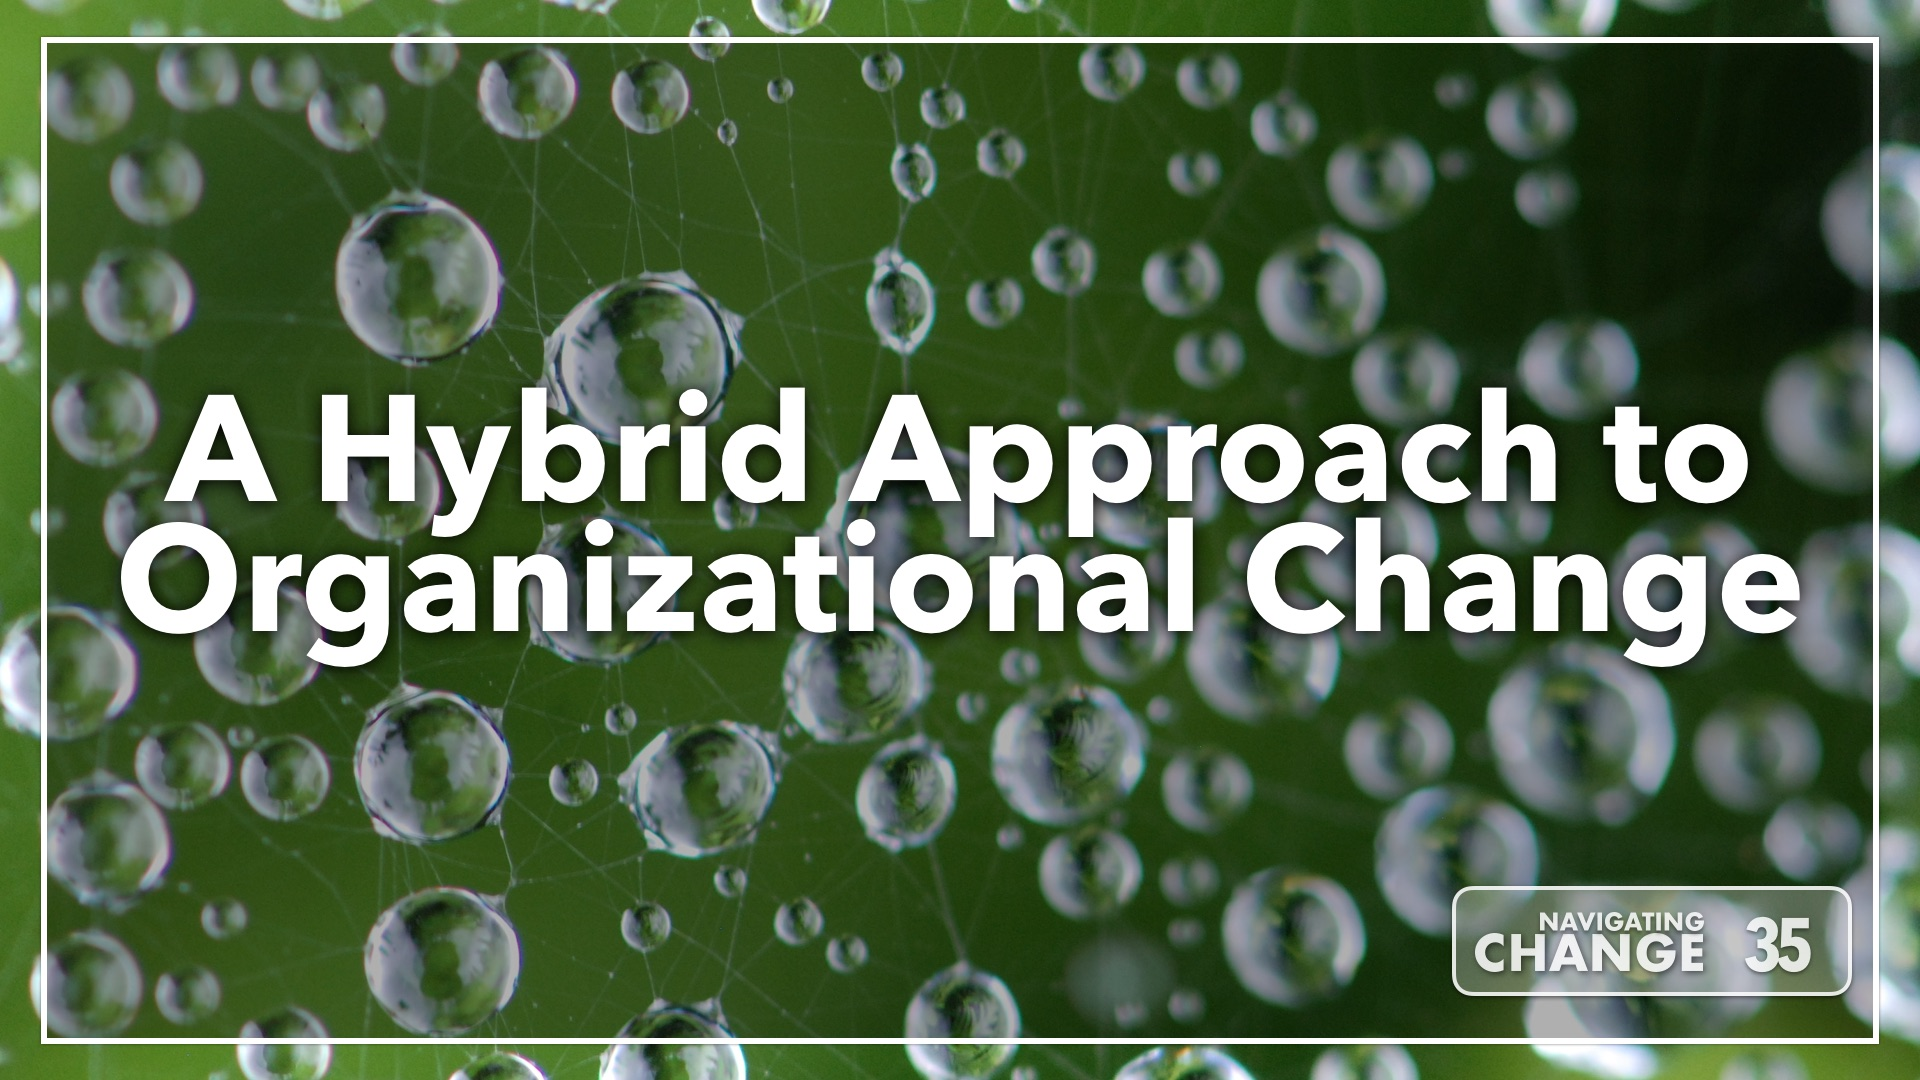 Listen to A Hybrid Approach to Organizational Change on Navigating Change The Education Podcast